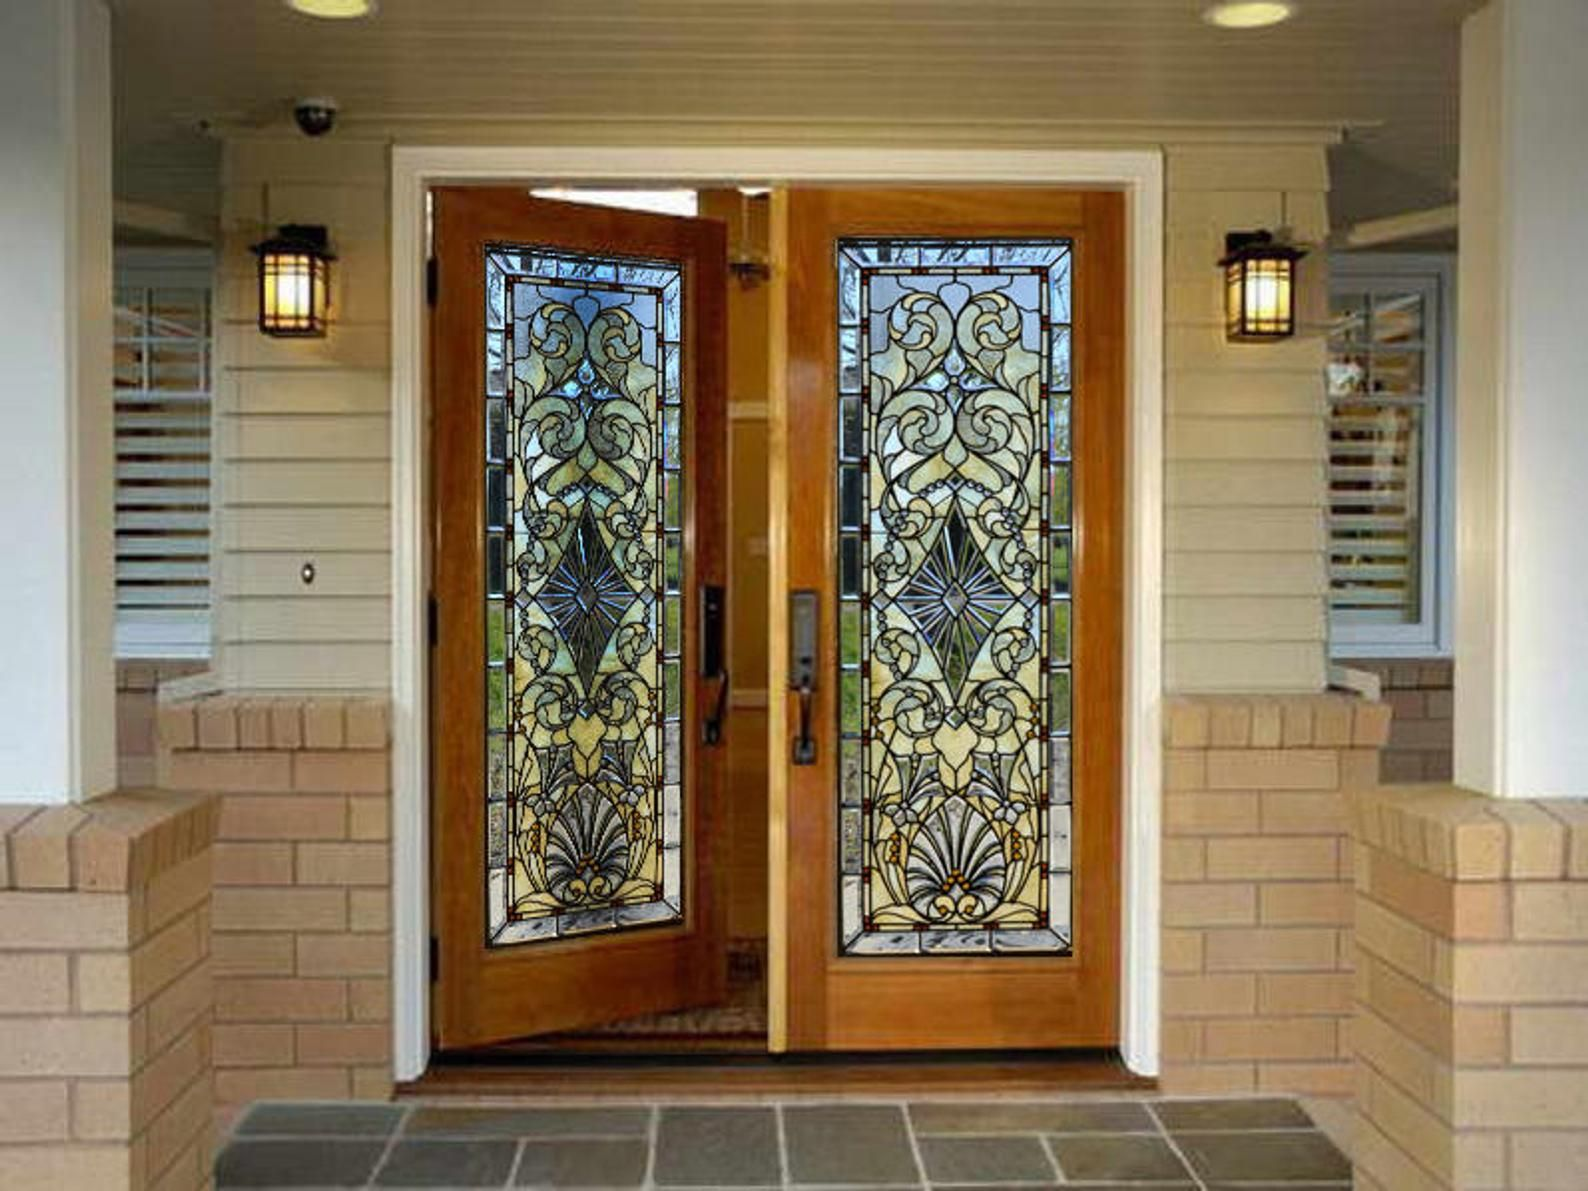 Door Wall Sticker Stained Glass With Bevels Self Adhesive Etsy Stained Glass Door Door Wall Double Glass Doors